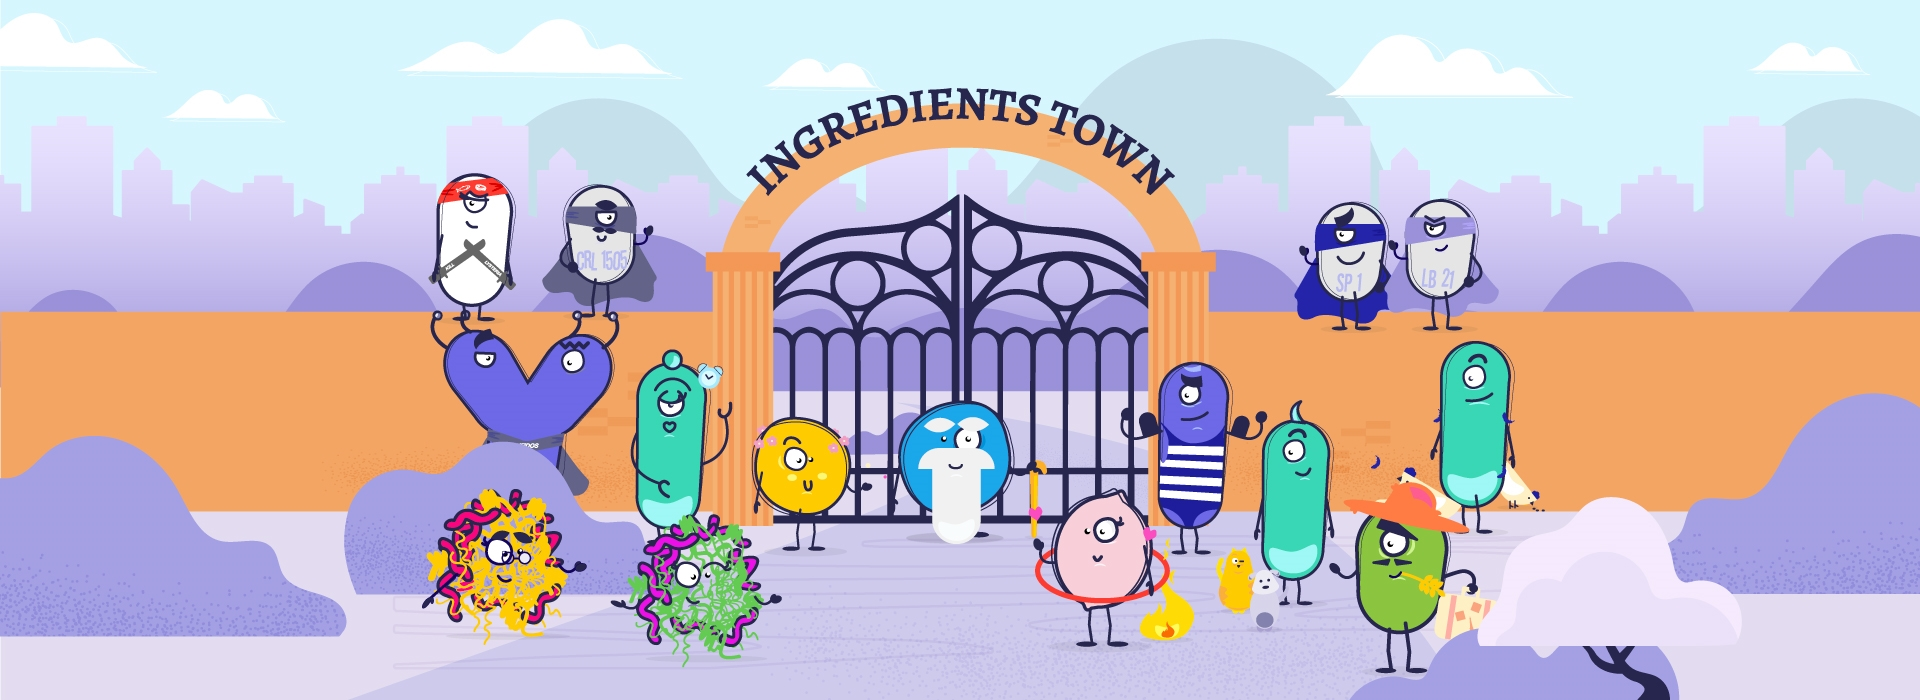 Descubre INgredients Town